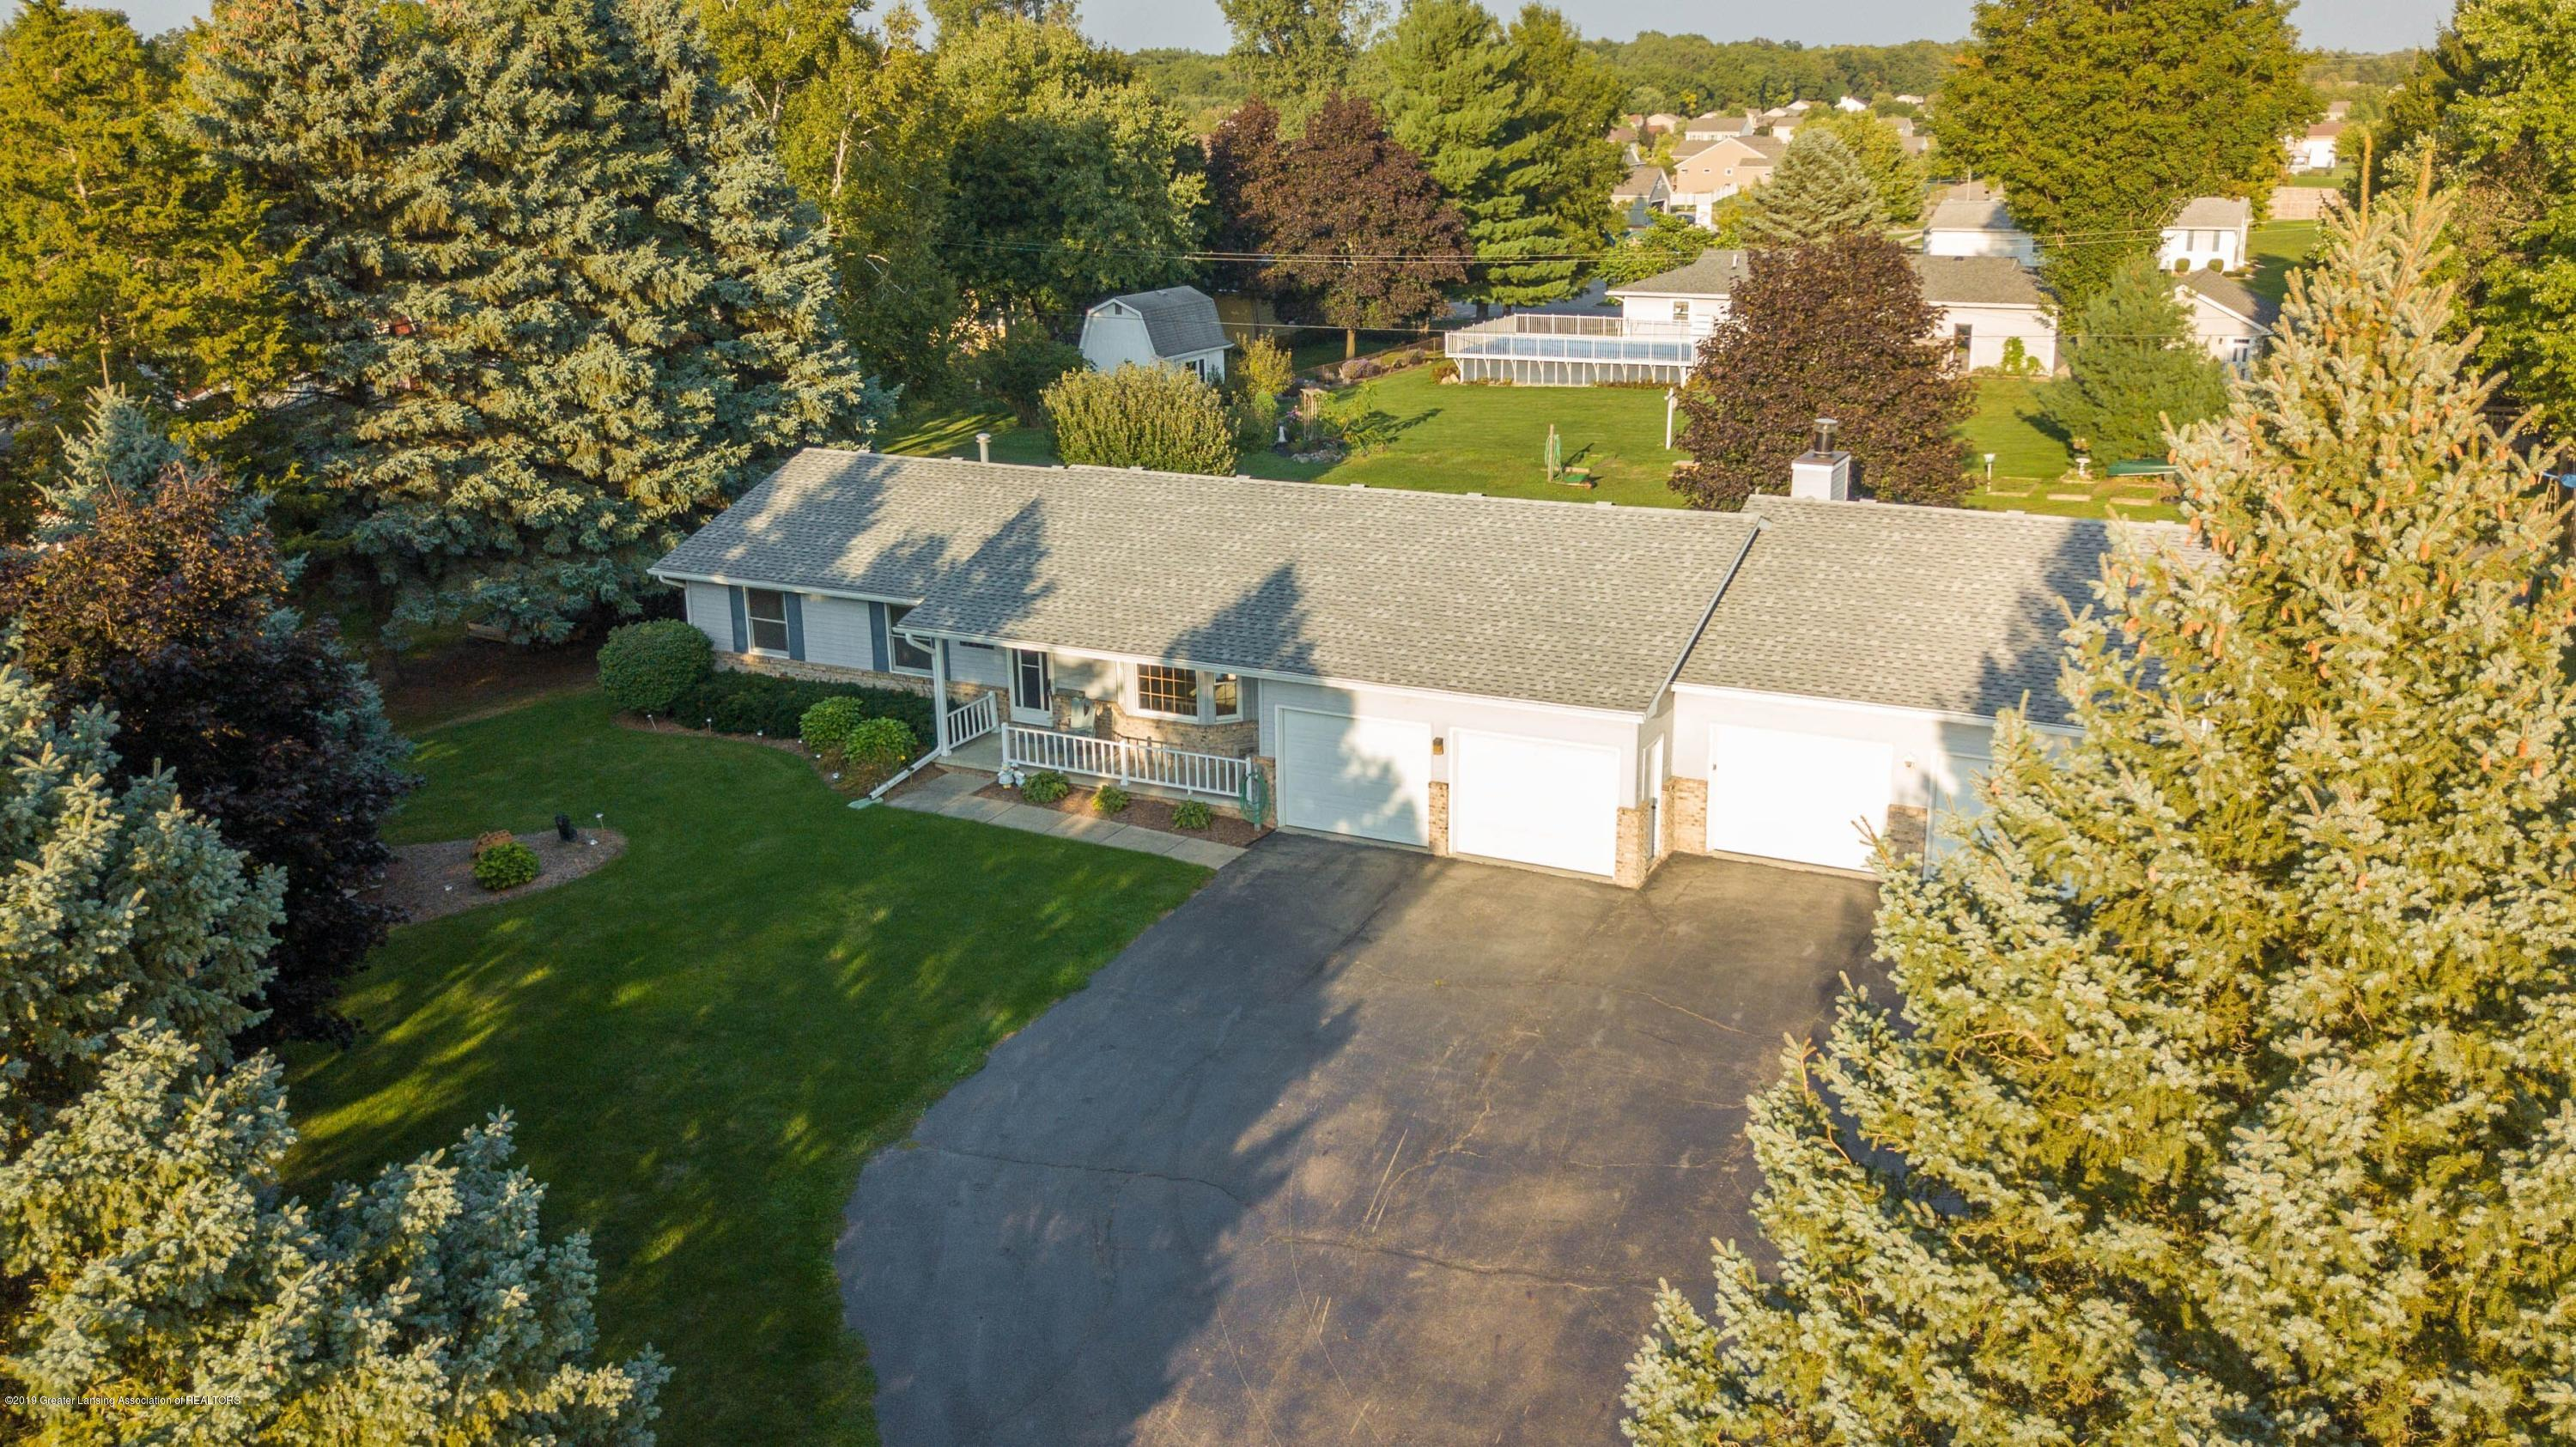 14695 Airport Rd - 3 - 3